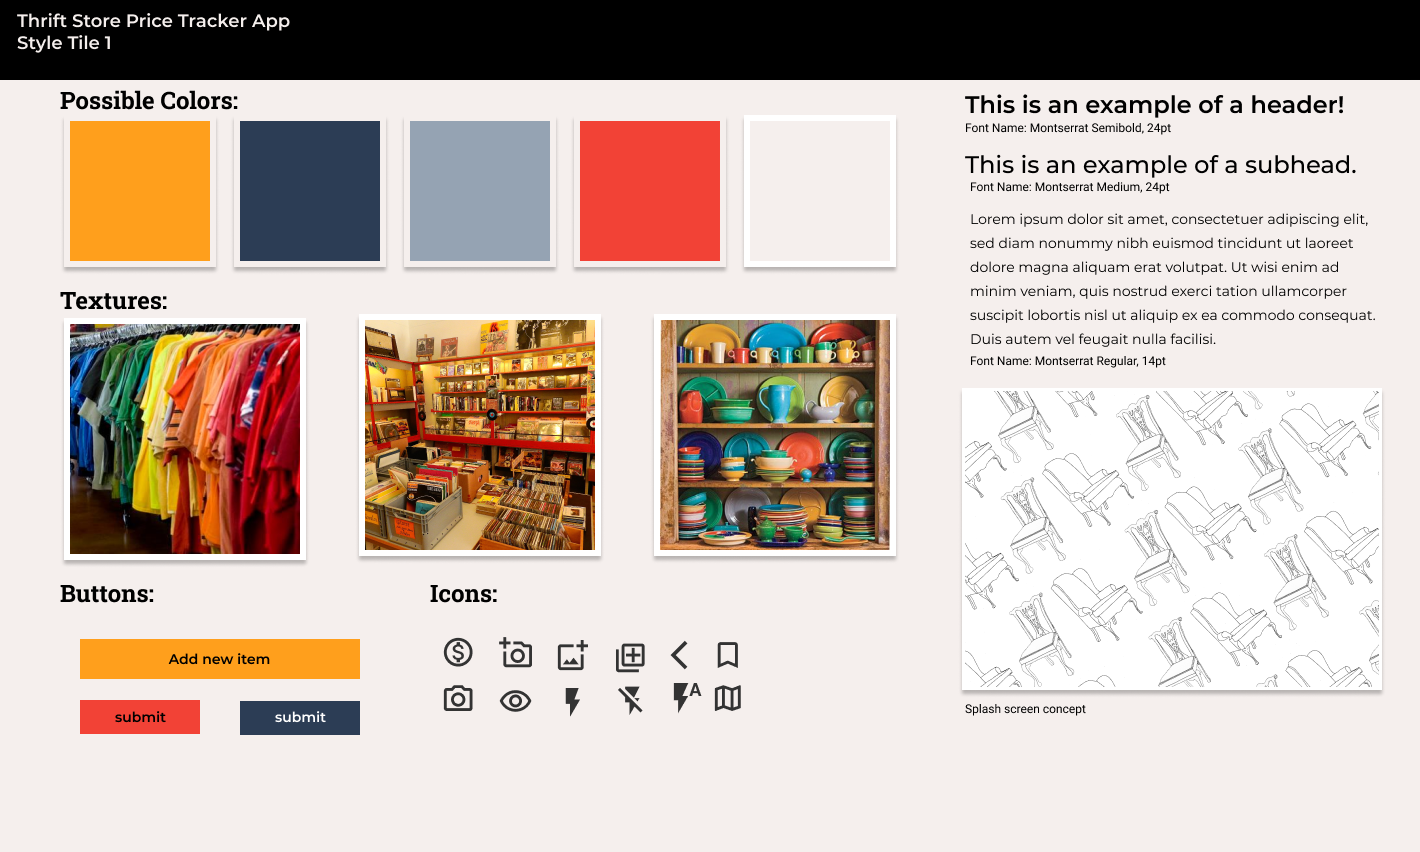 This is a style tile. It is showing how the app will look, with color swatches, typography samples, and icons and buttons.